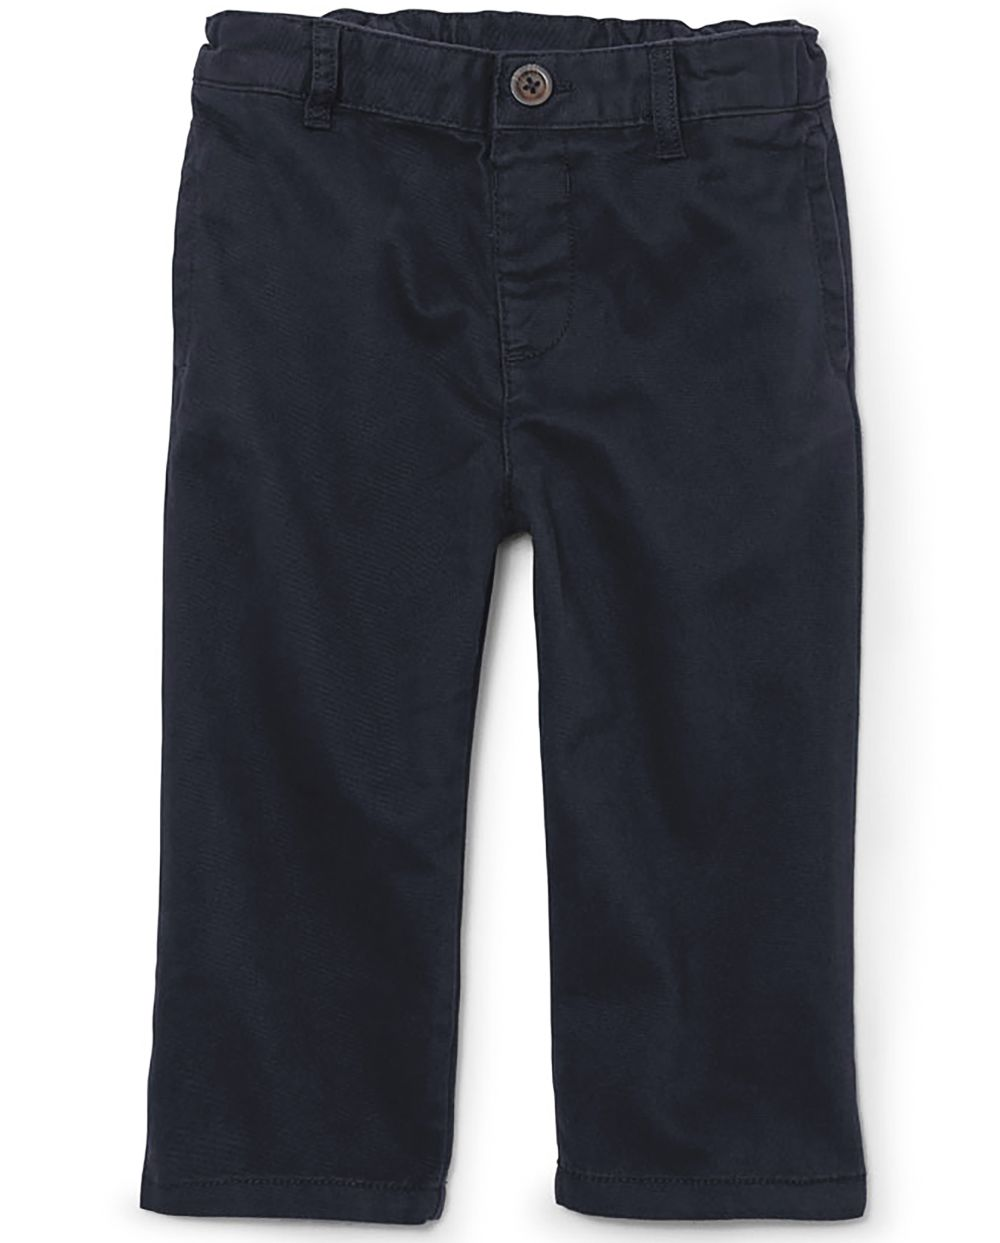 Baby And Toddler Boys Uniform Chino Pants